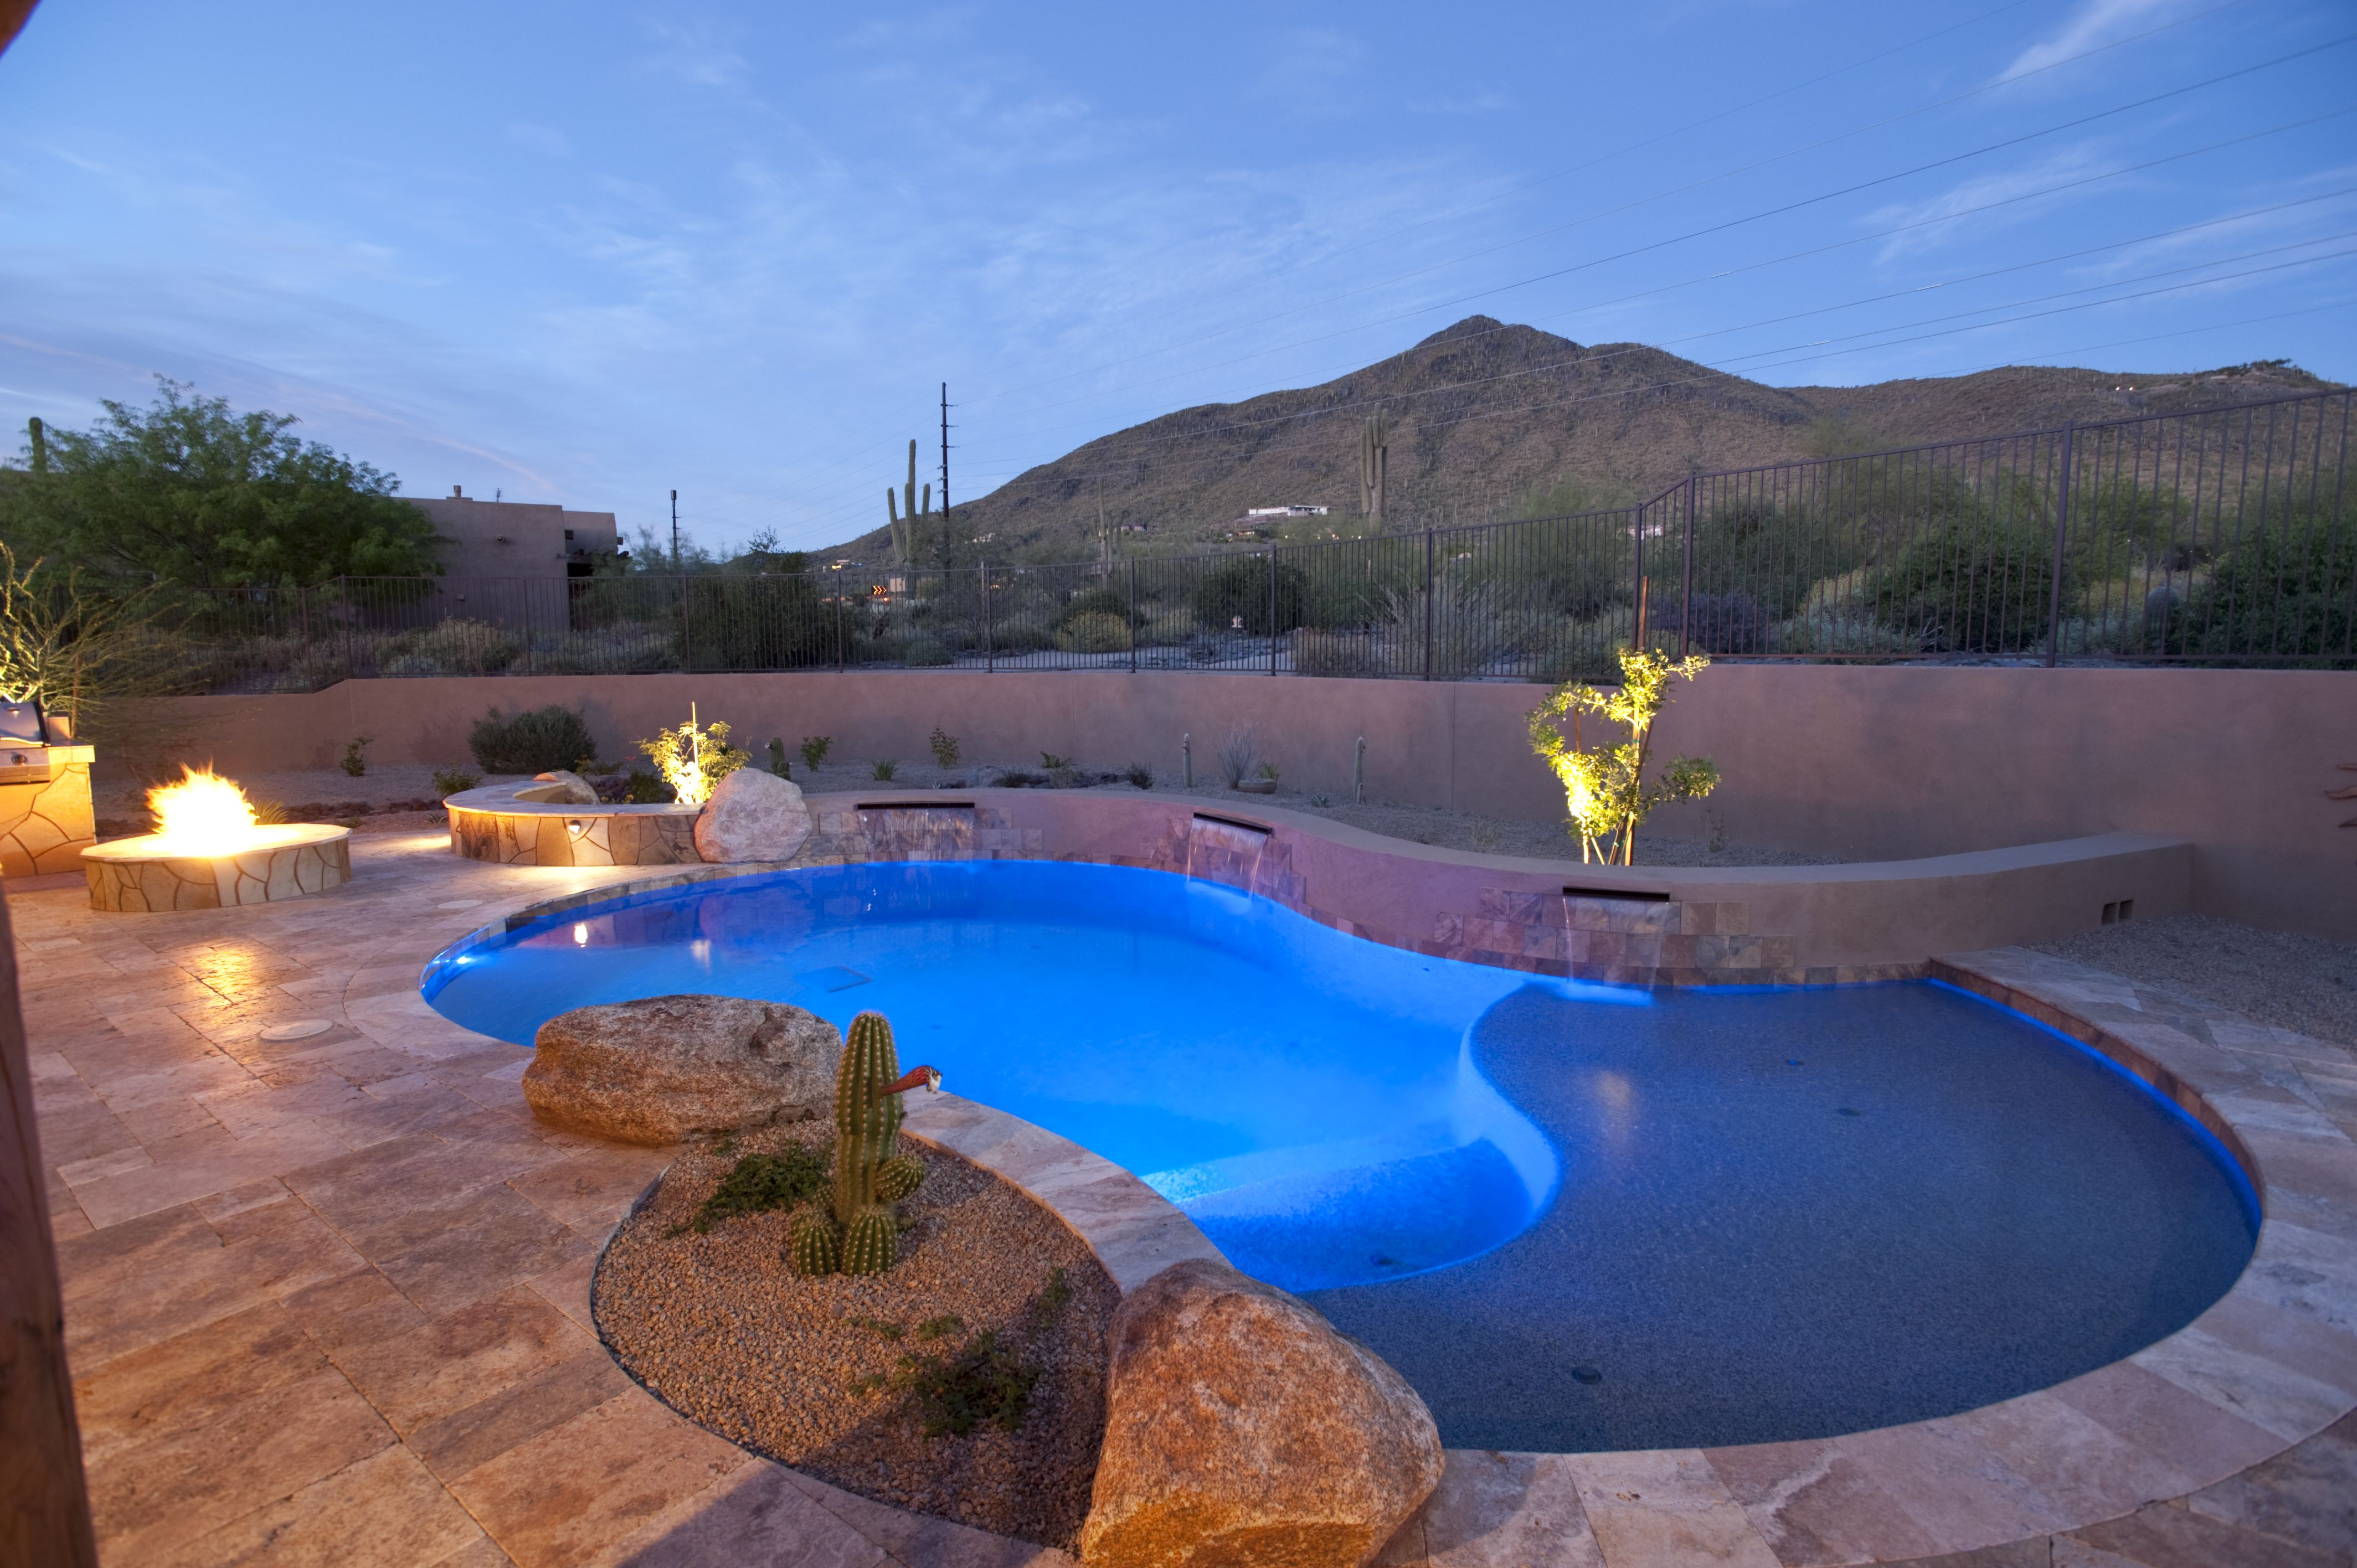 Lovely Incorporation Of A Pool With Fire Pits And Seating Walls California Pools Arizona Pools Backyard Pool